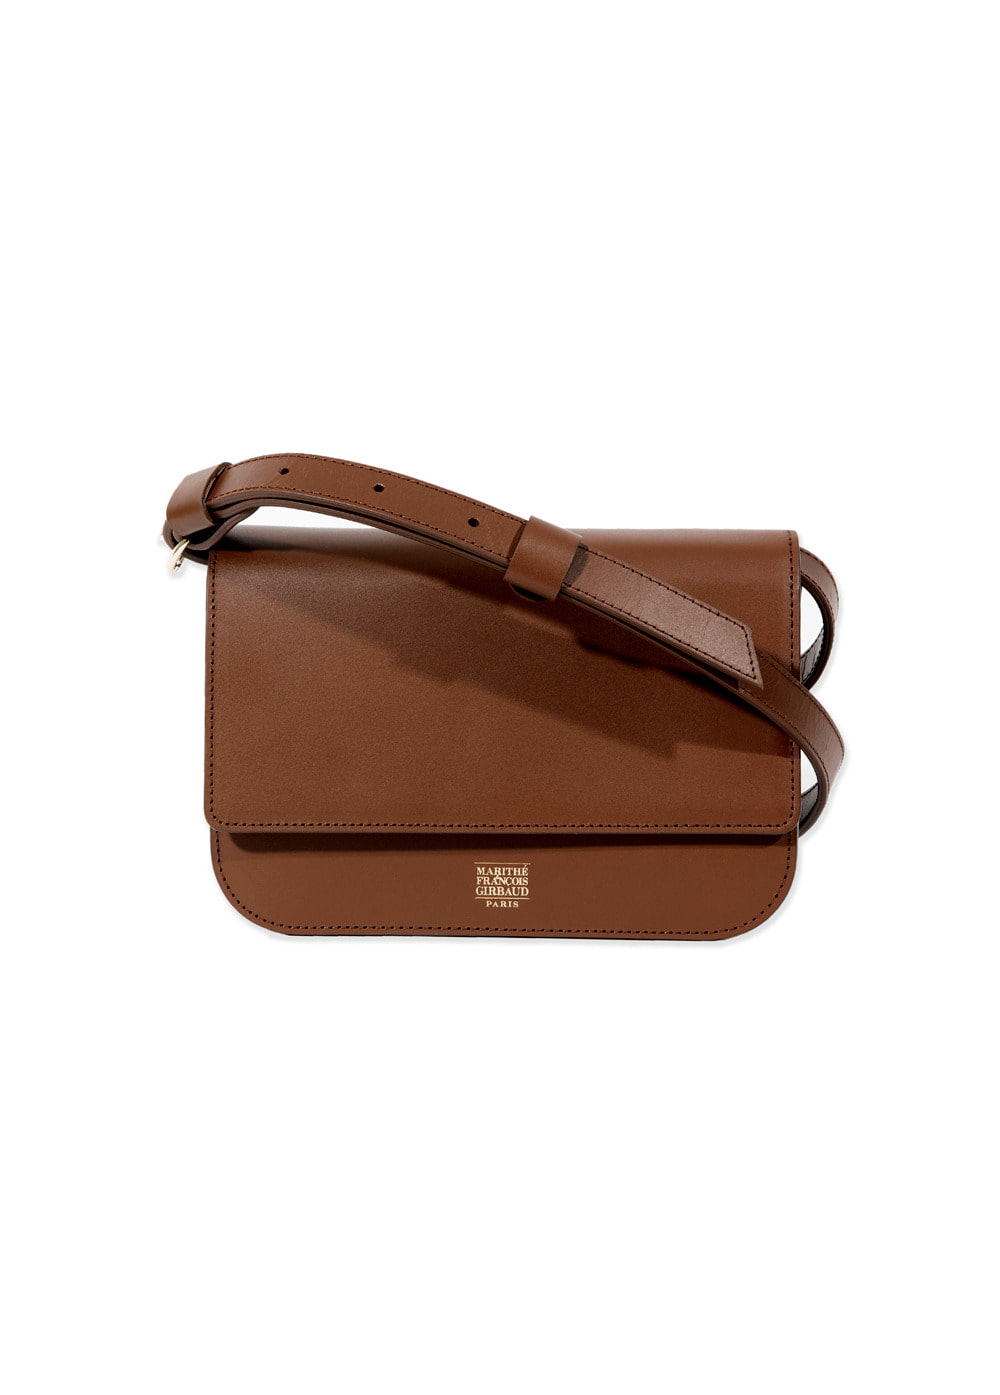 MARITHE LEATHER SHOULDER BAG tan